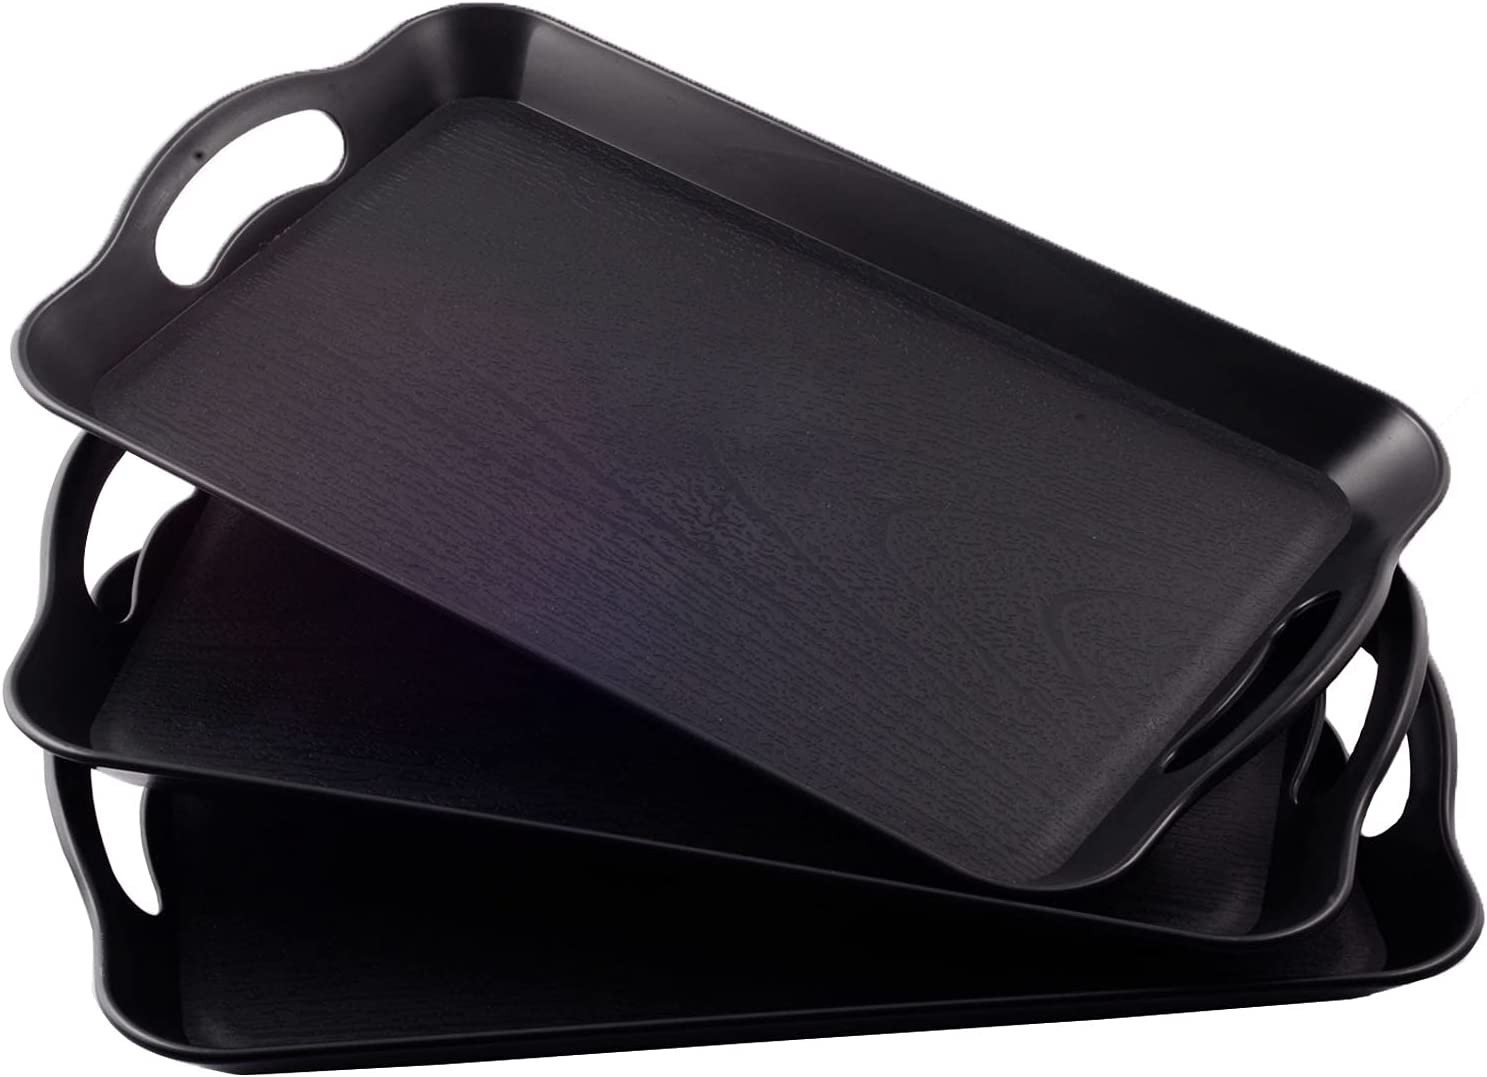 3 Pack Plastic Tray with Handles Rectangle Serving Tray Set, Multipurpose Tray Waterproof, Non Slip Trays for Serving Food, Parties, Coffee Table, Buffets, Breakfast(Black Wood Grain)